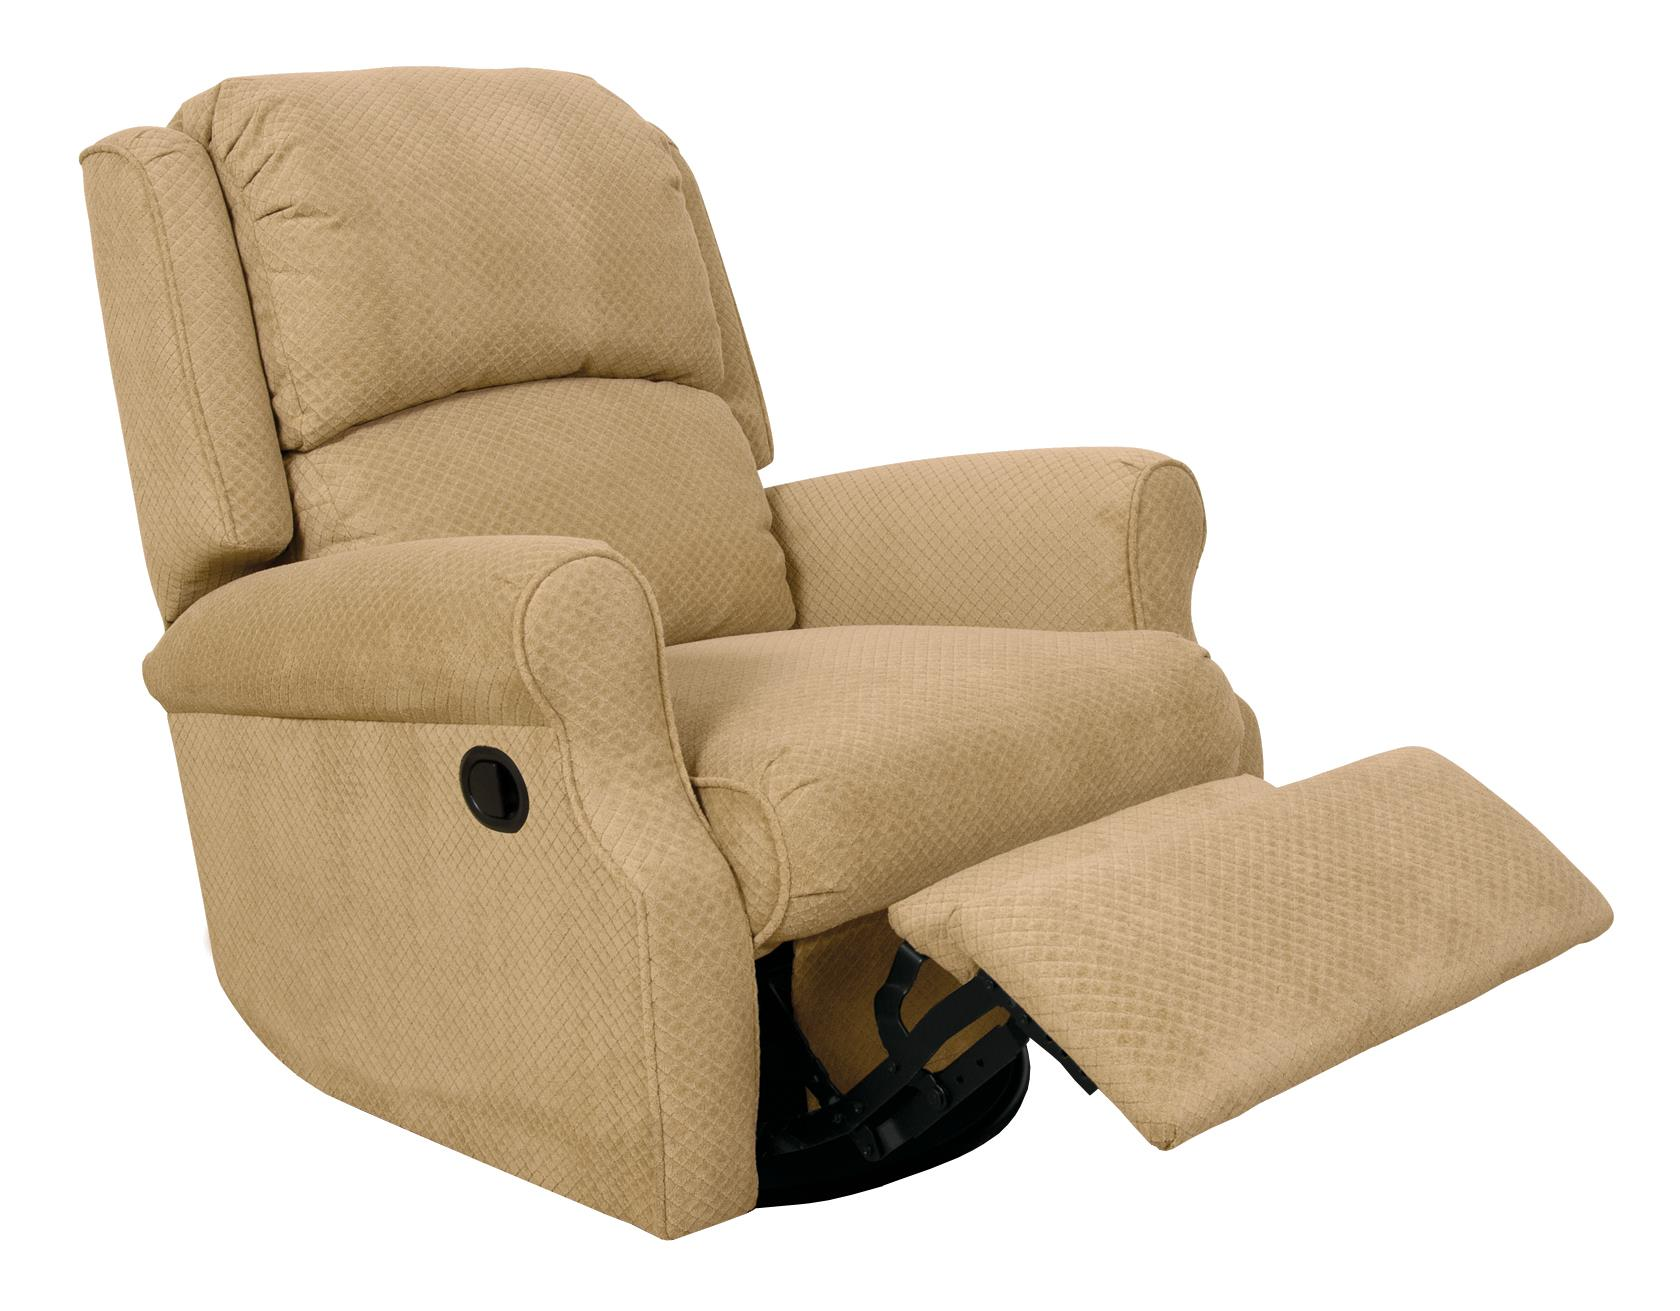 medical recliner chairs captains chair gym england marybeth style reclining lift with